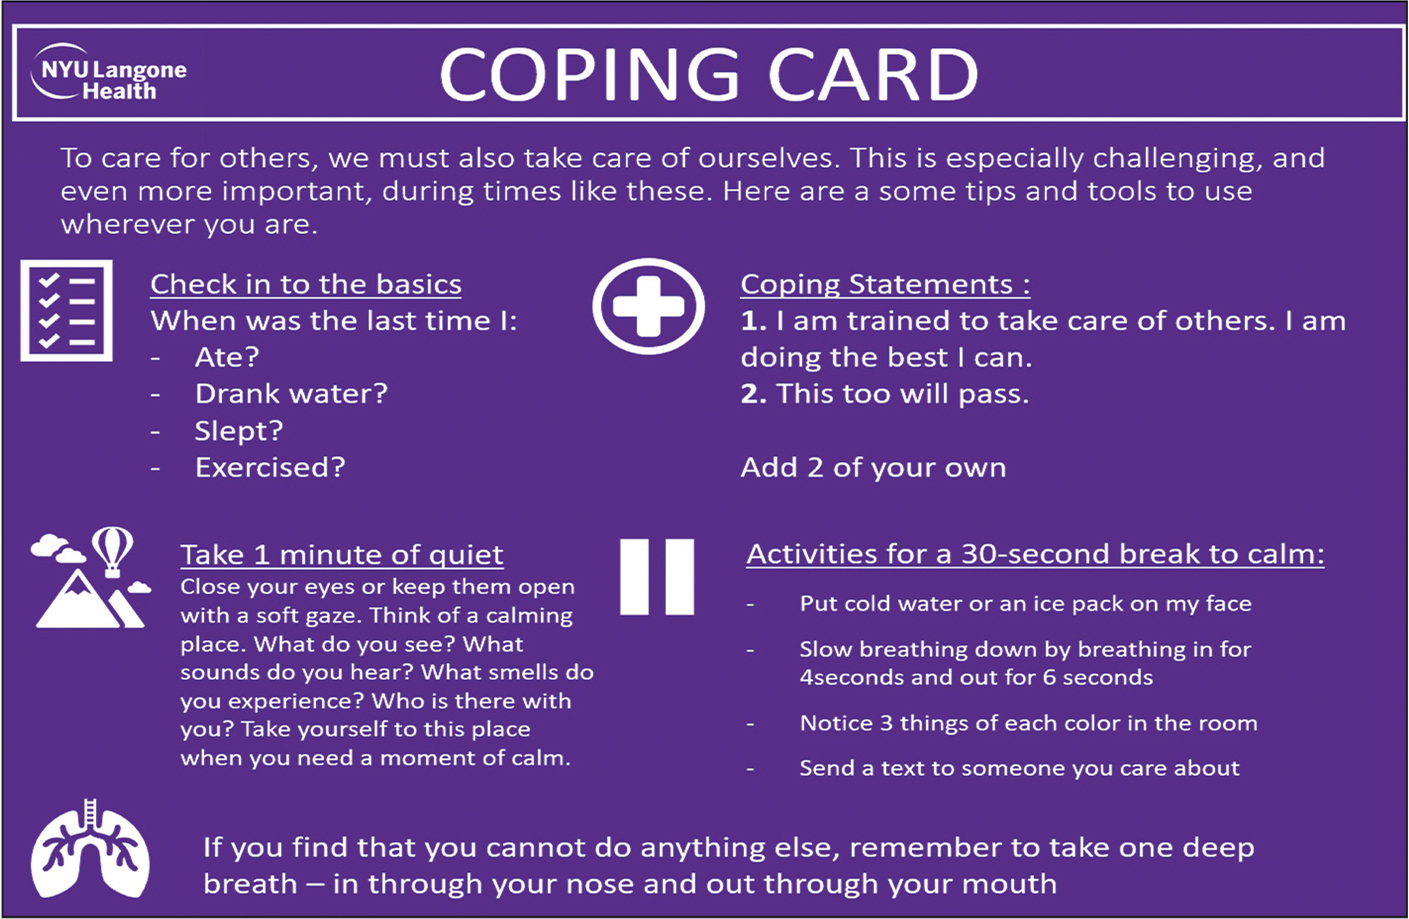 Coping card resource. Figure used with permission of Dr. Charles R. Marmar (Chair, Center for Alcohol Use Disorder and PTSD, Department of Psychiatry, NYU Grossman School of Medicine, NYU Langone Health).